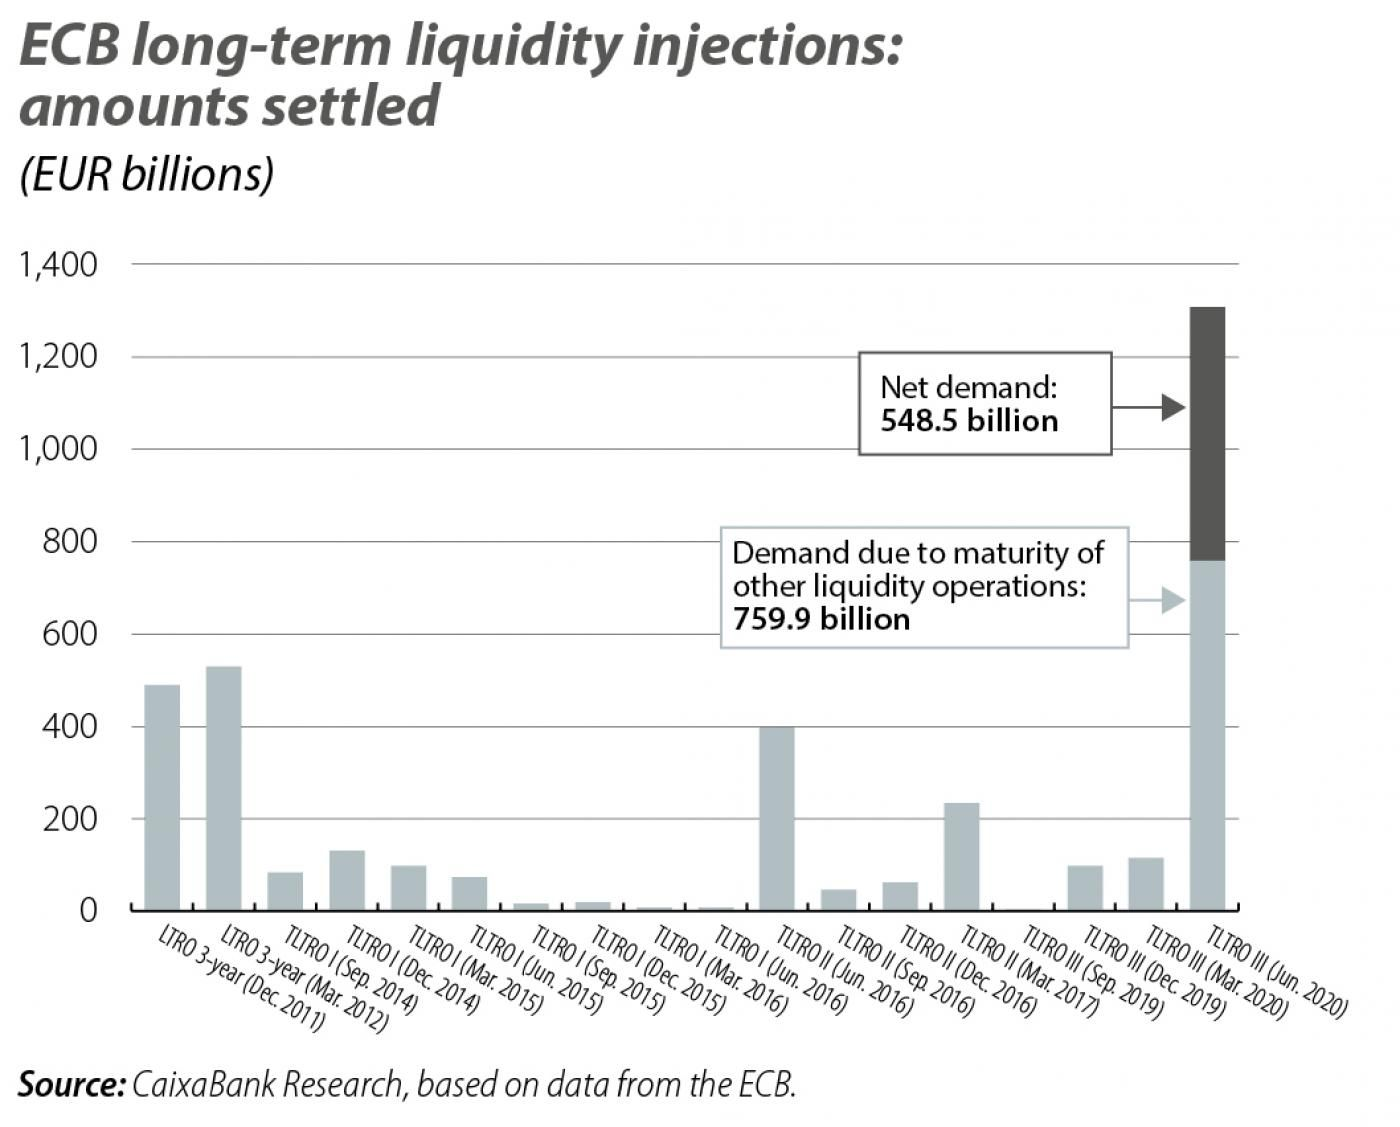 ECB long-term liquidity injections: amounts settled